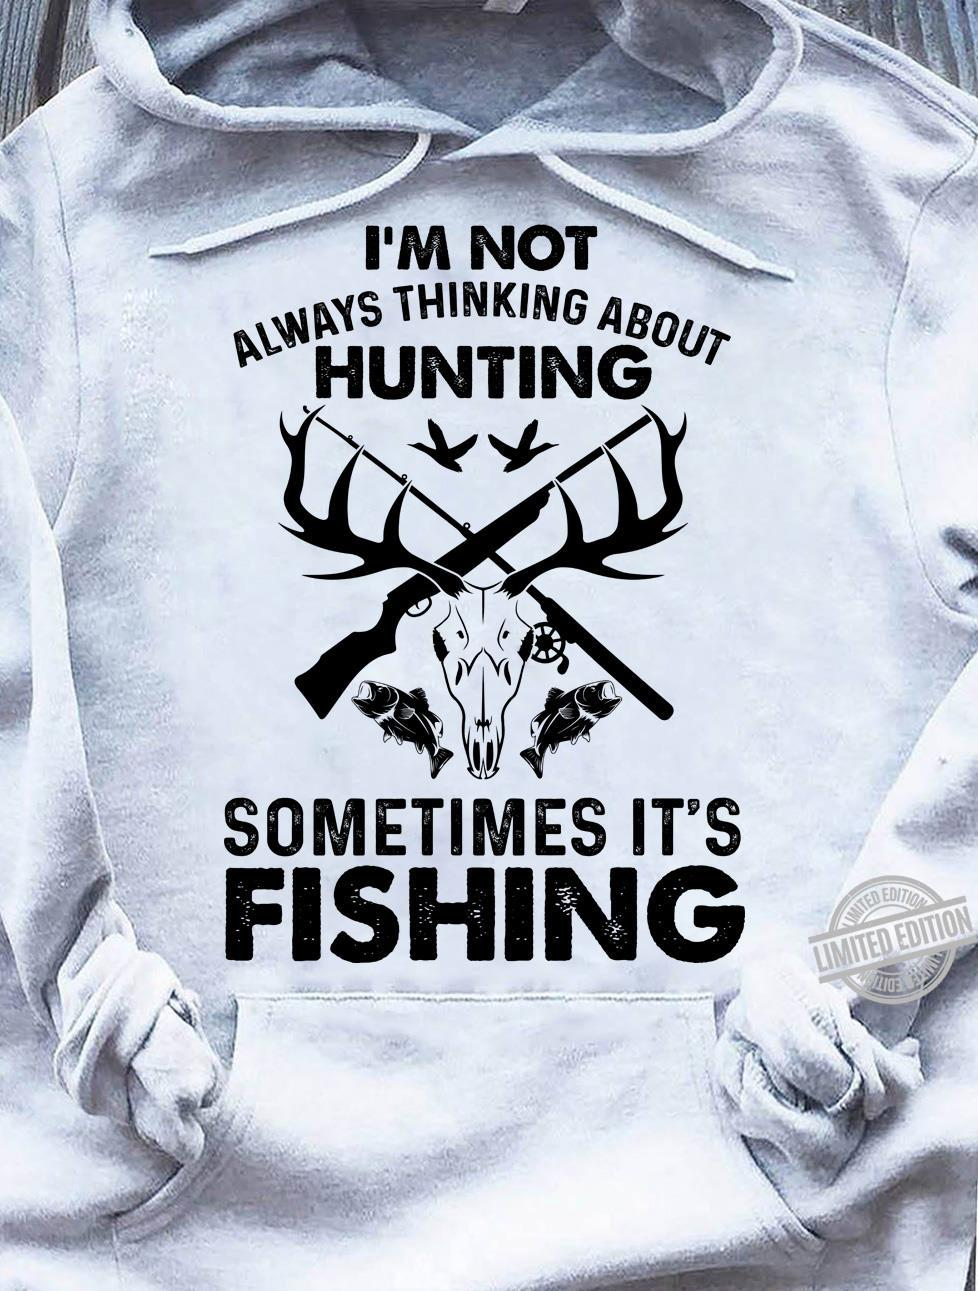 I'm Not Always Thinking About Hunting Sometimes It's Fishing Shirt